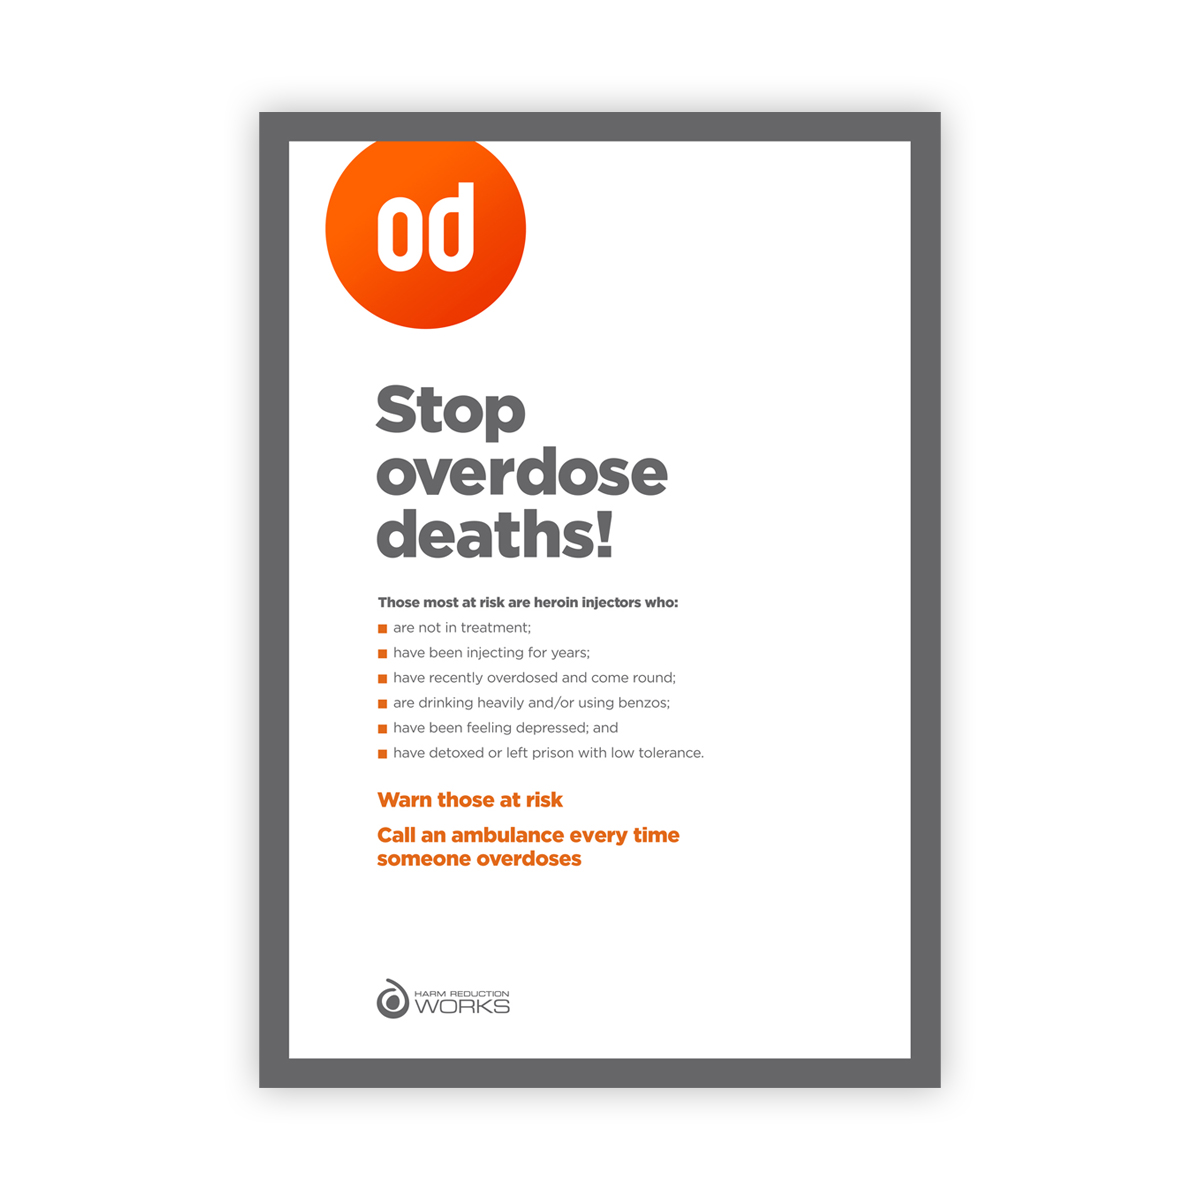 Stop overdose deaths poster